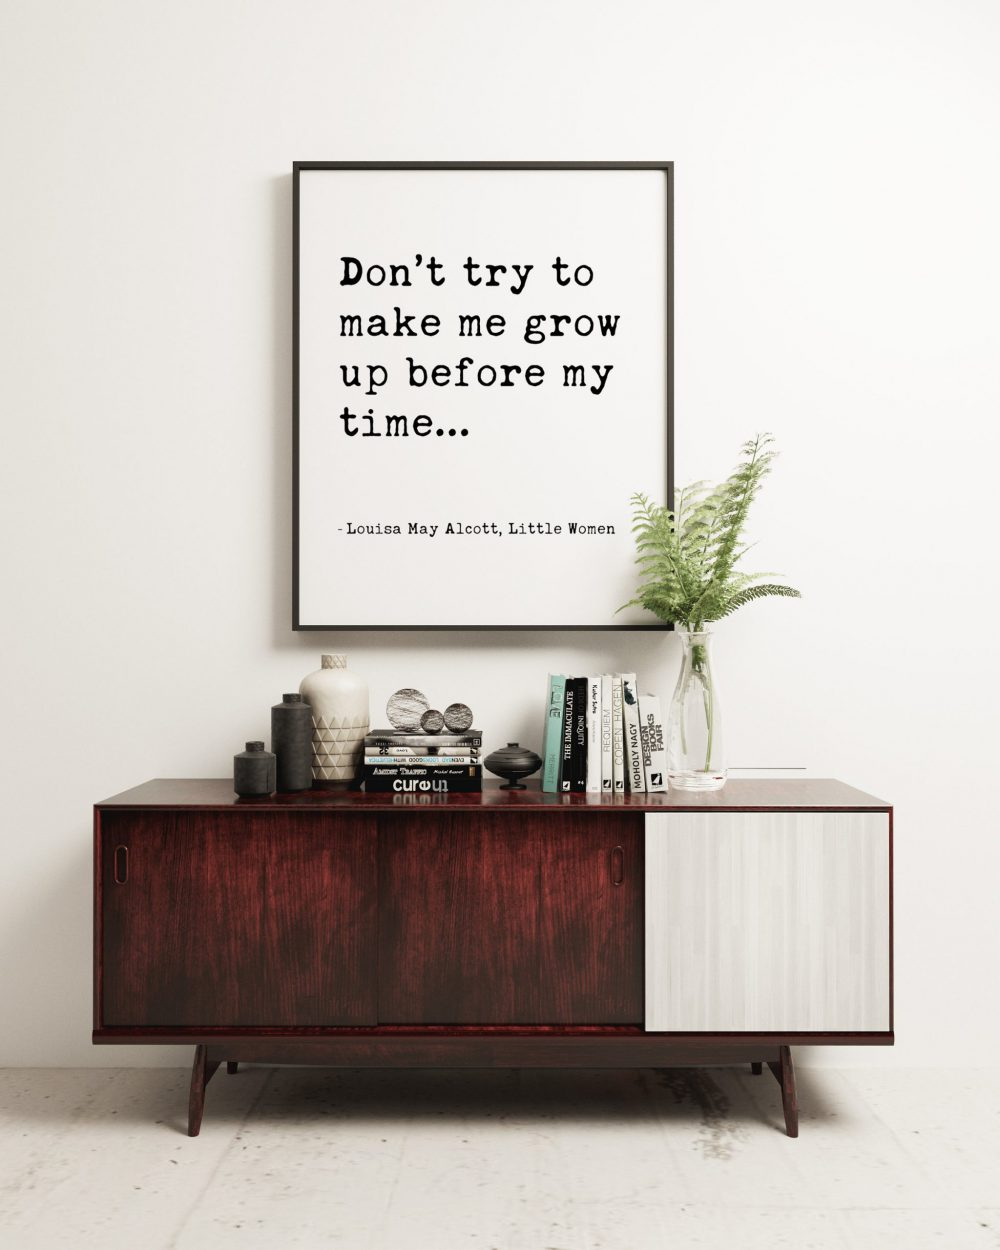 Don't try to make me grow up before my time... - Louisa May Alcott, Little Women Typography Print | Home Wall Decor | Minimalist Decor